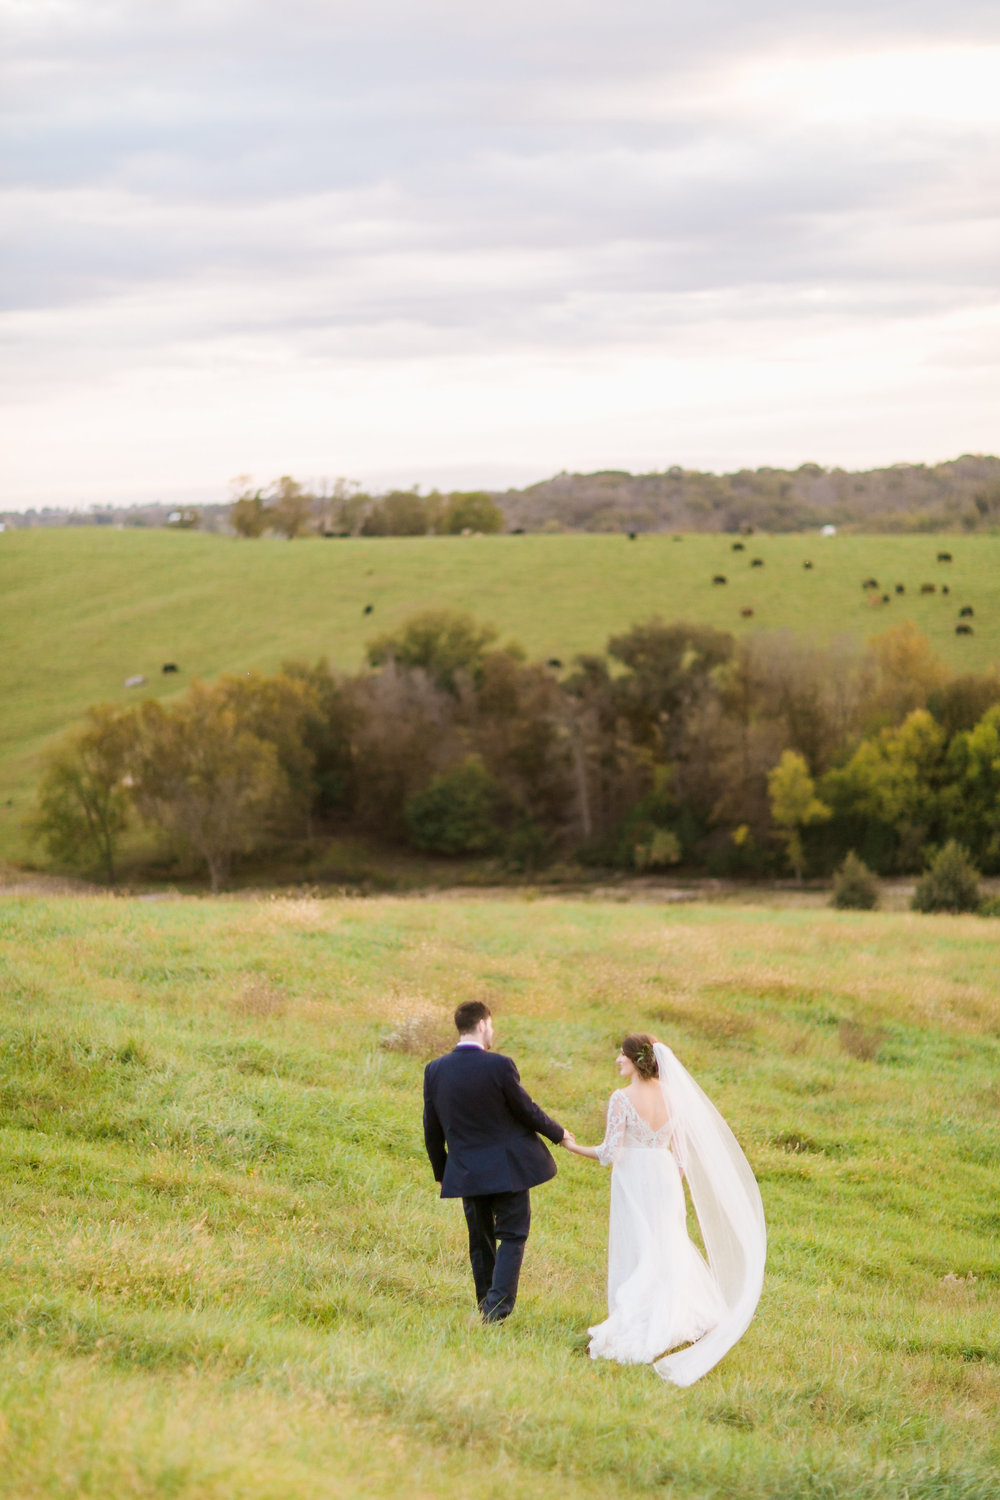 MissouriRusticWedding_StLouisWeddingPhotographer_AliciaDan_CatherineRhodesPhotography-4188-Edit.jpg